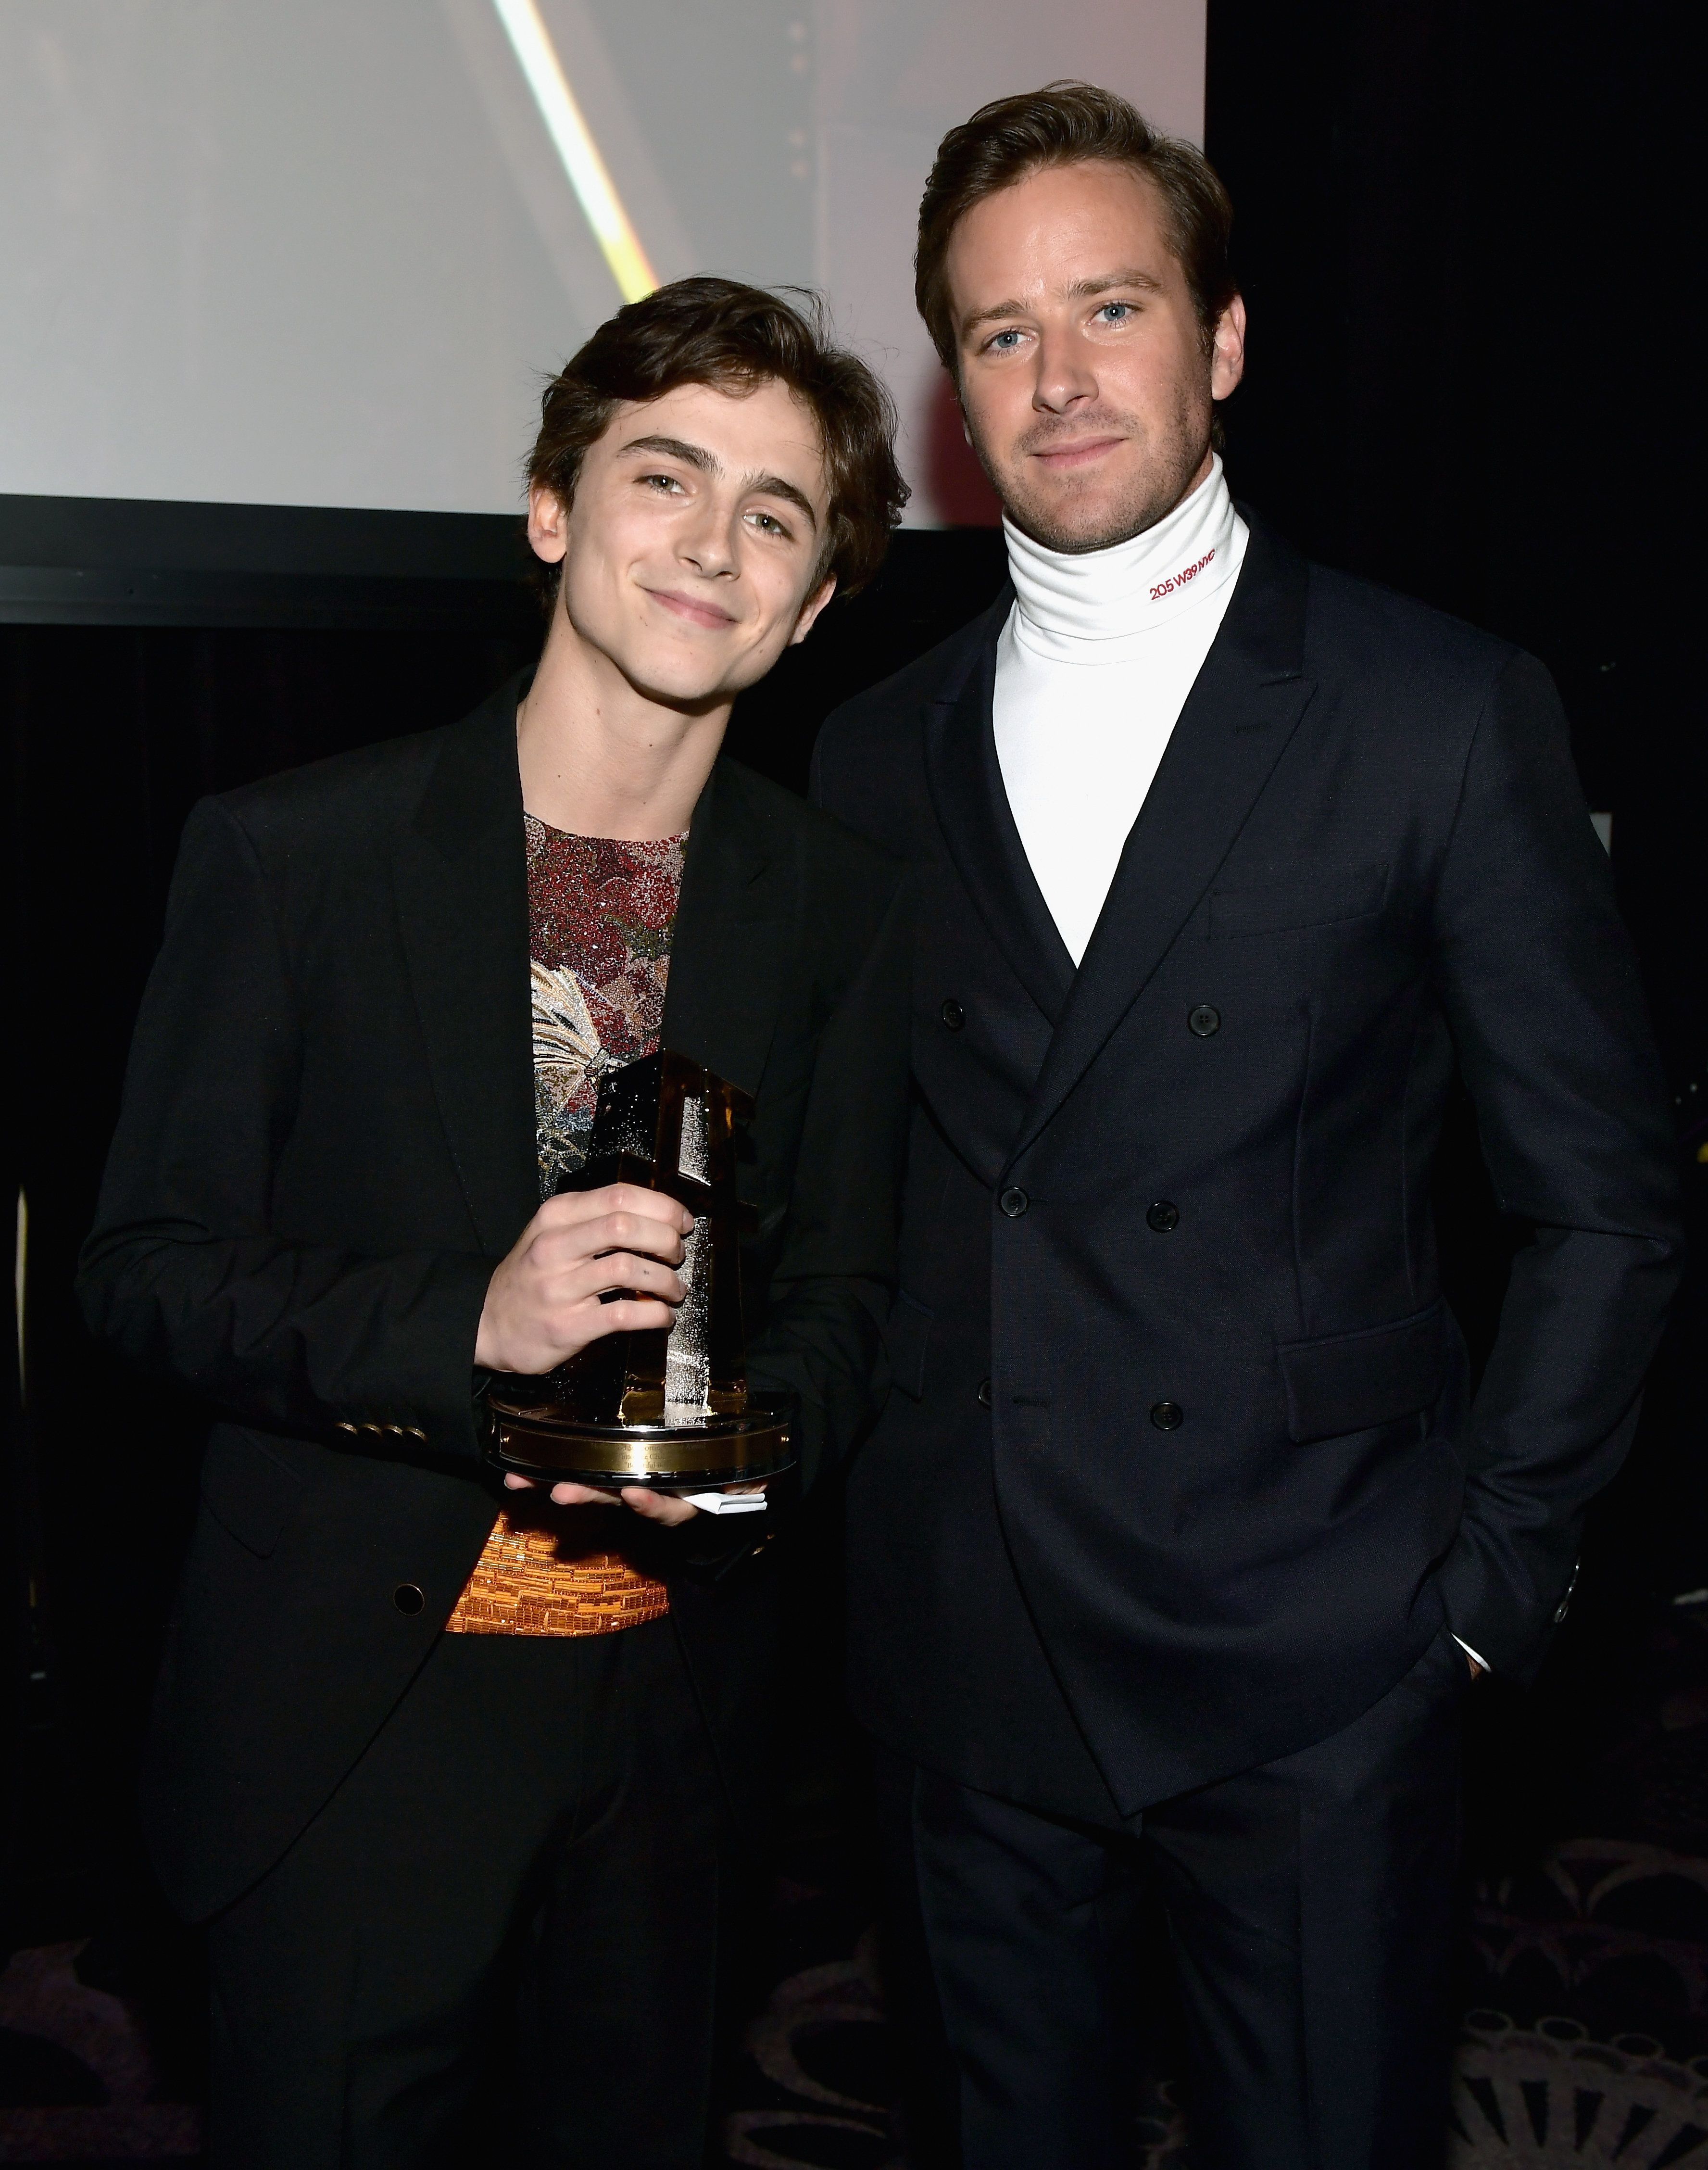 Hammer left the door open to a sequel if co-starTimothée Chalamet signed on and with the...